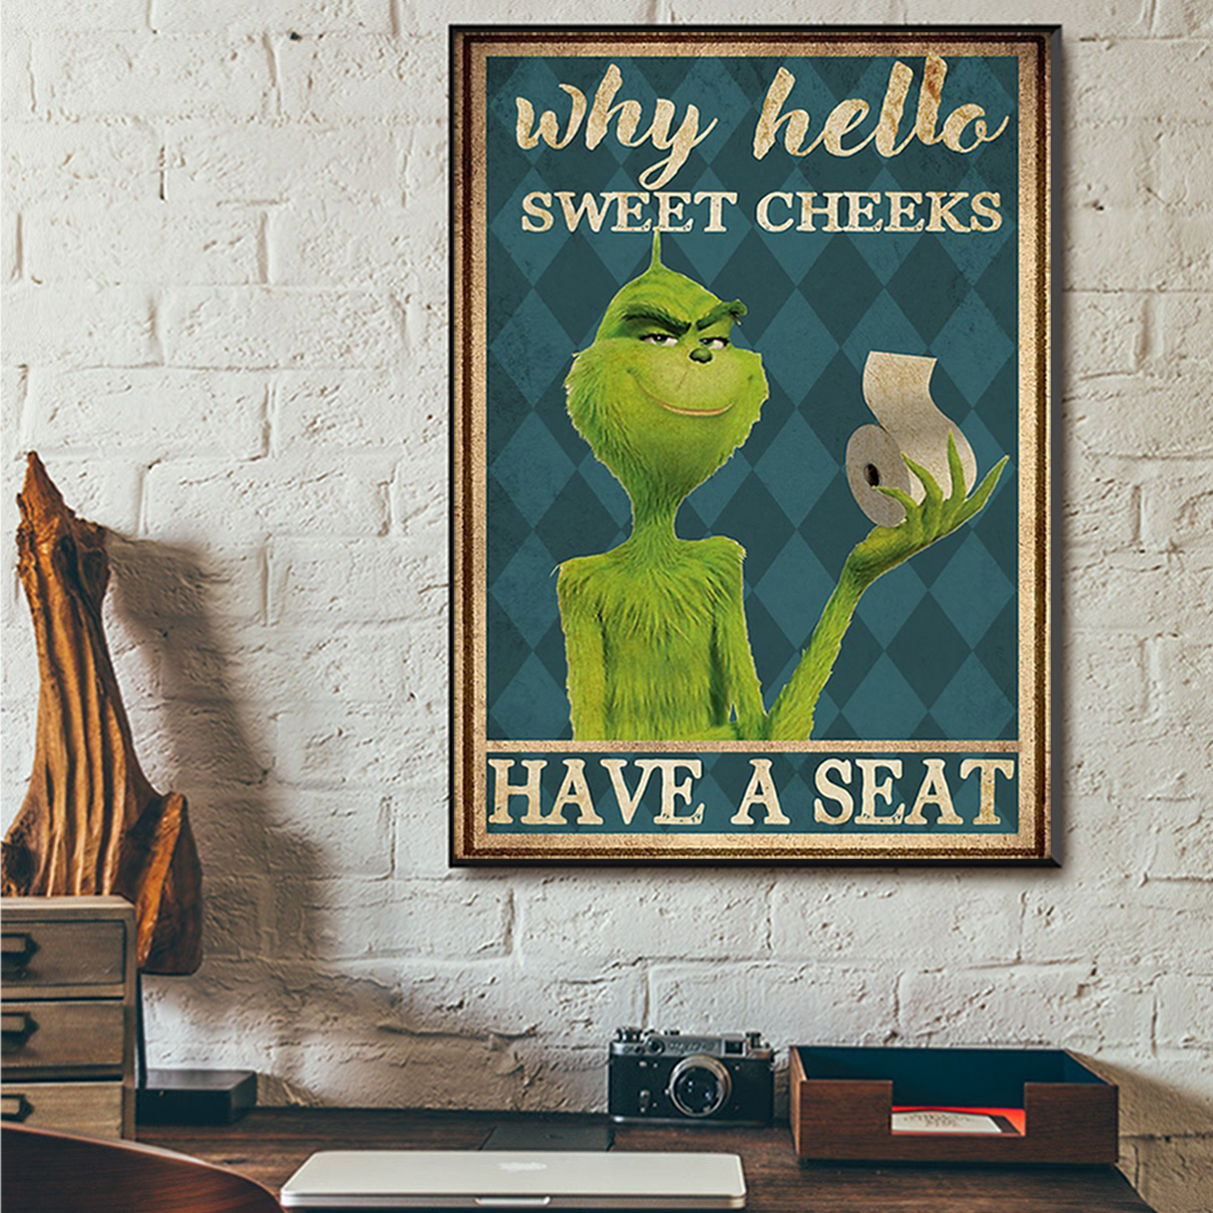 Grinch why hello sweet cheeks have a seat poster A2